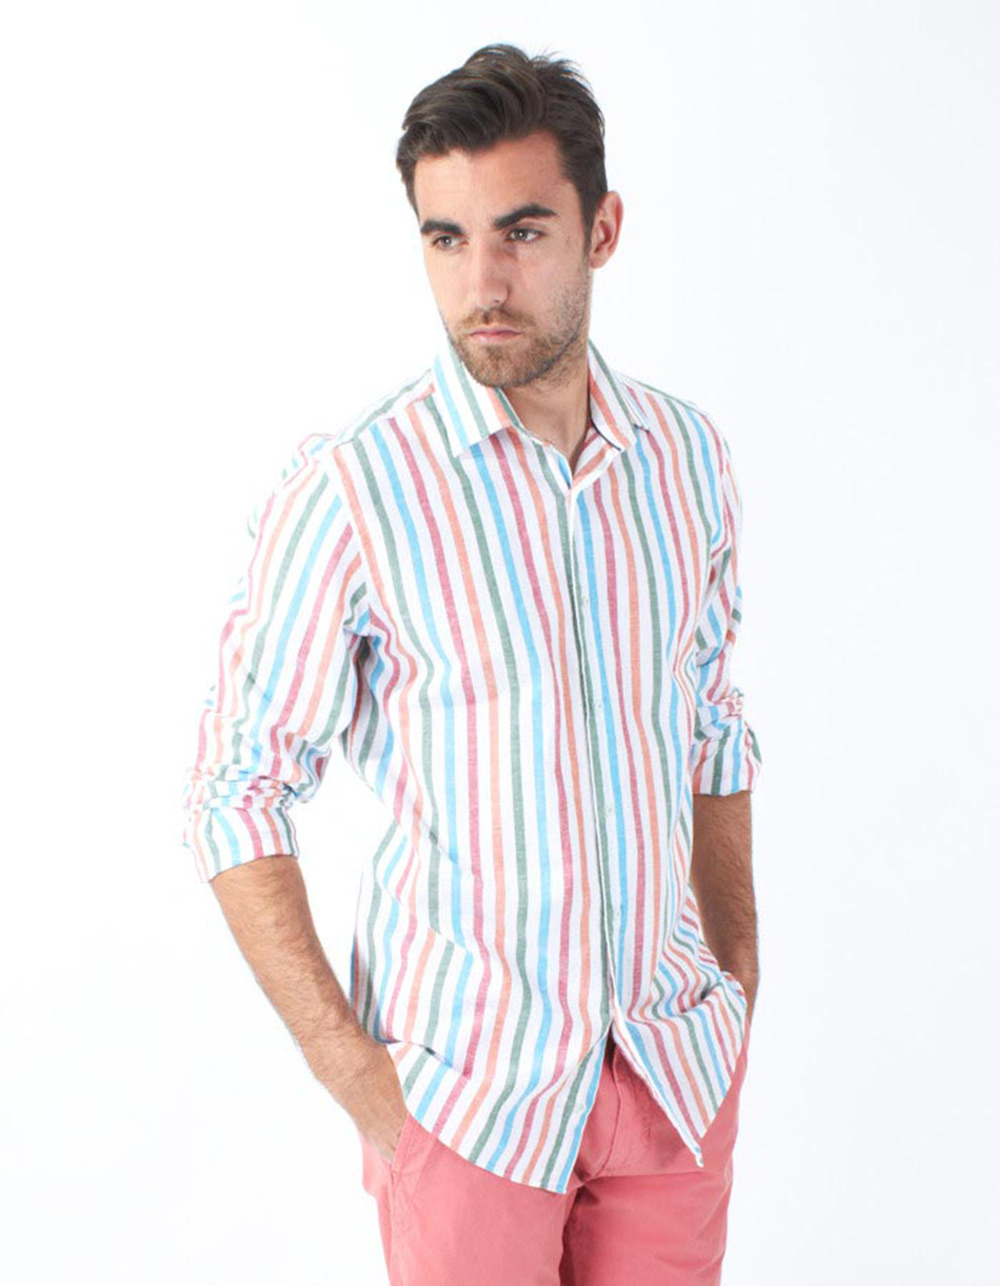 Multicolour striped shirt - Backside